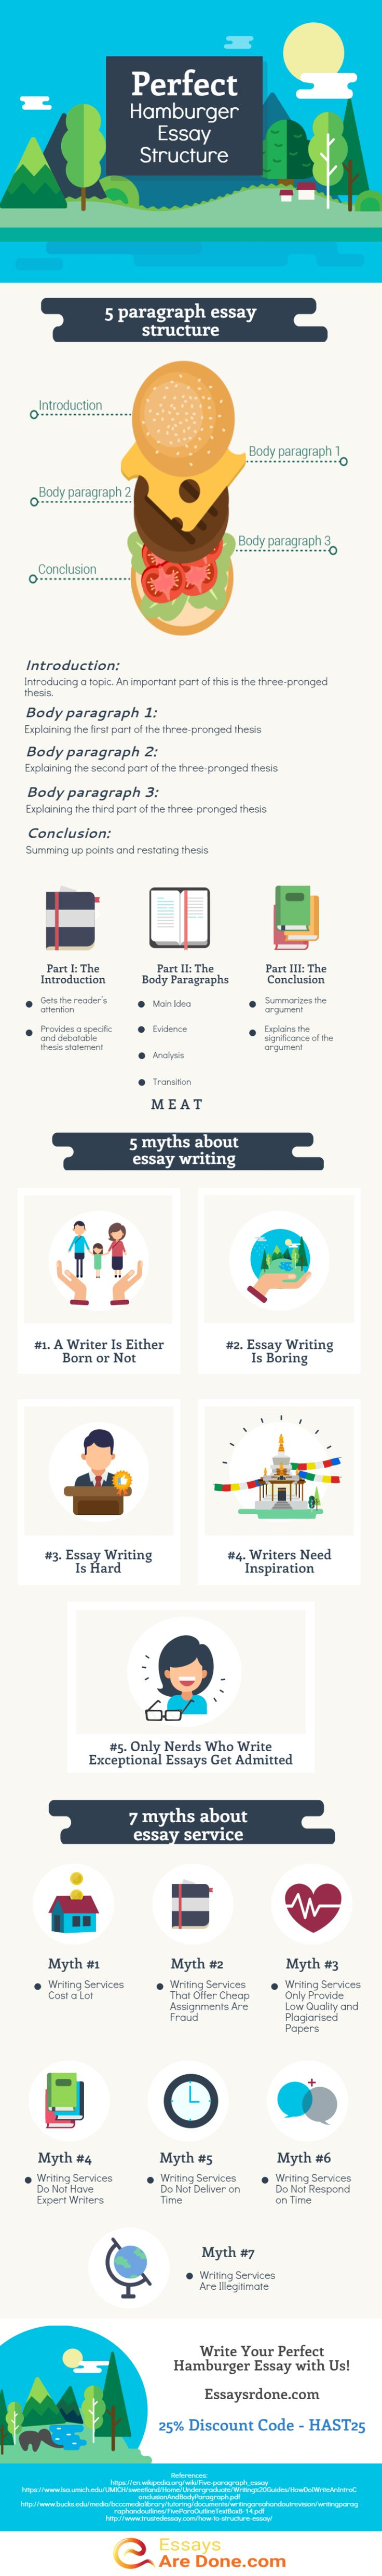 Simple Essays For High School Students Best Ideas About Essay Structure Essay Writing This Is Essay Structure Made  Simple And Interesting To Examples Of Thesis Statements For English Essays also Sample Essay English A Level English Essay Structure Best Ideas About Essay Structure  Essay Samples For High School